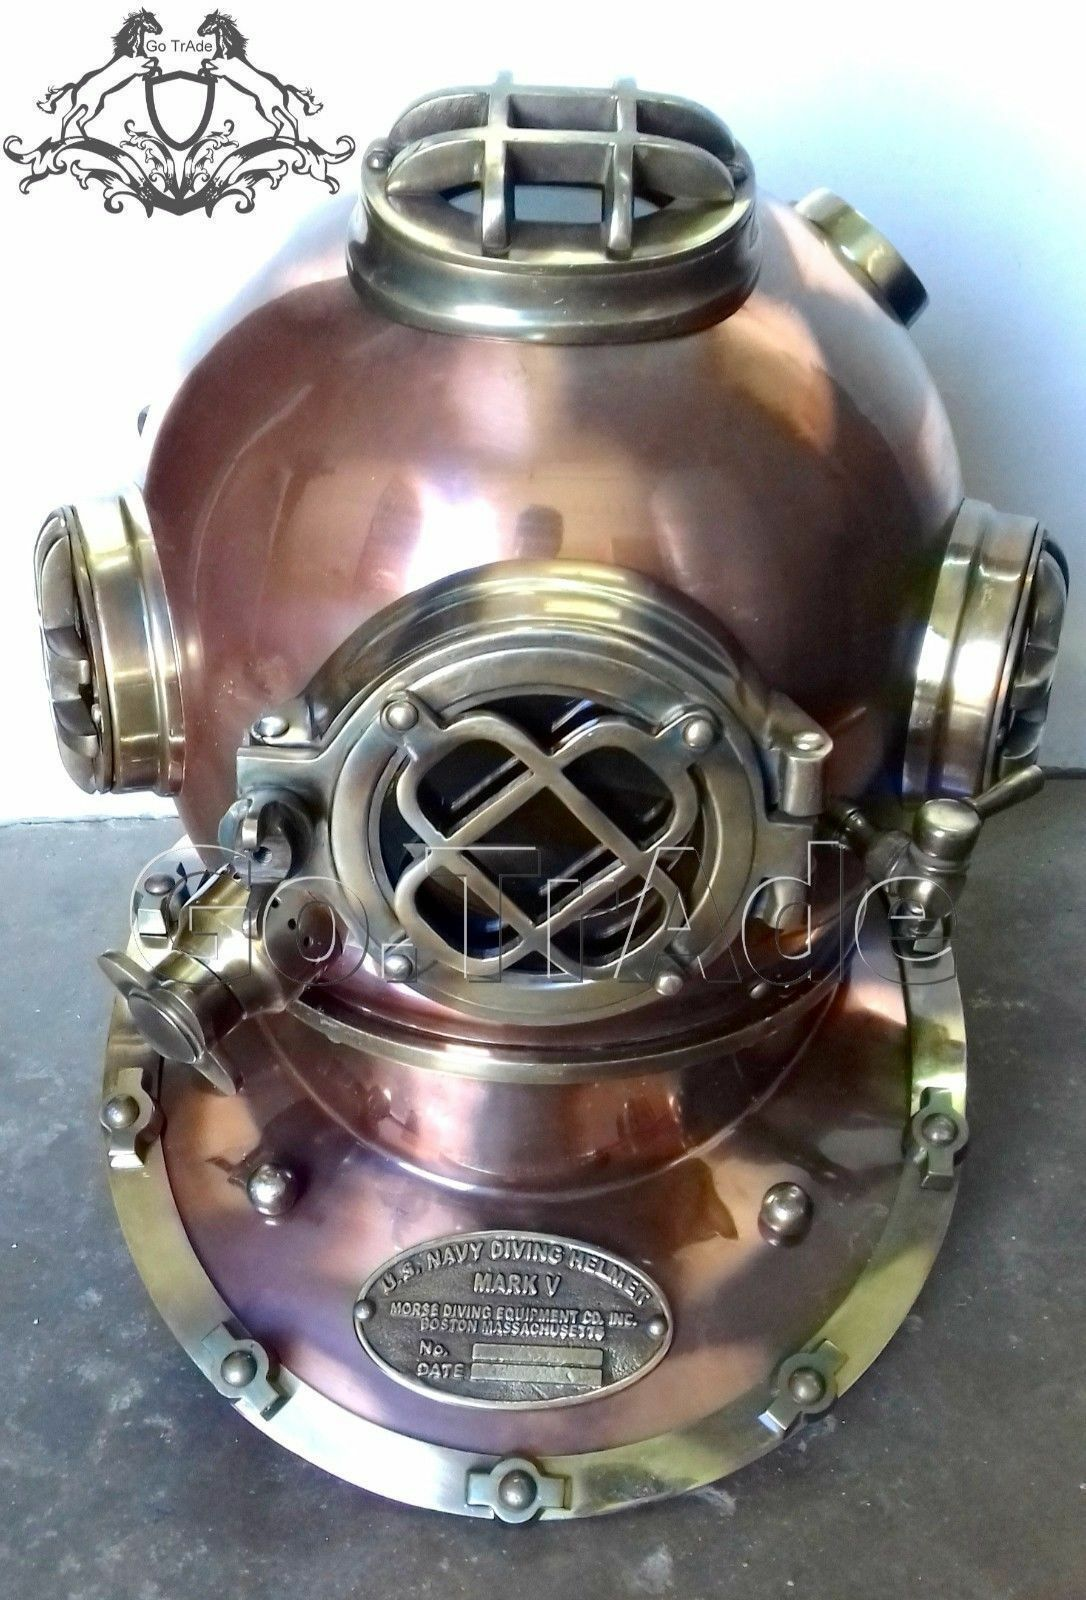 Antiques Other Maritime Antiques Us Navy Boston Dive Helmet Scuba Mark V Diving Divers Helmet Christmas Gift